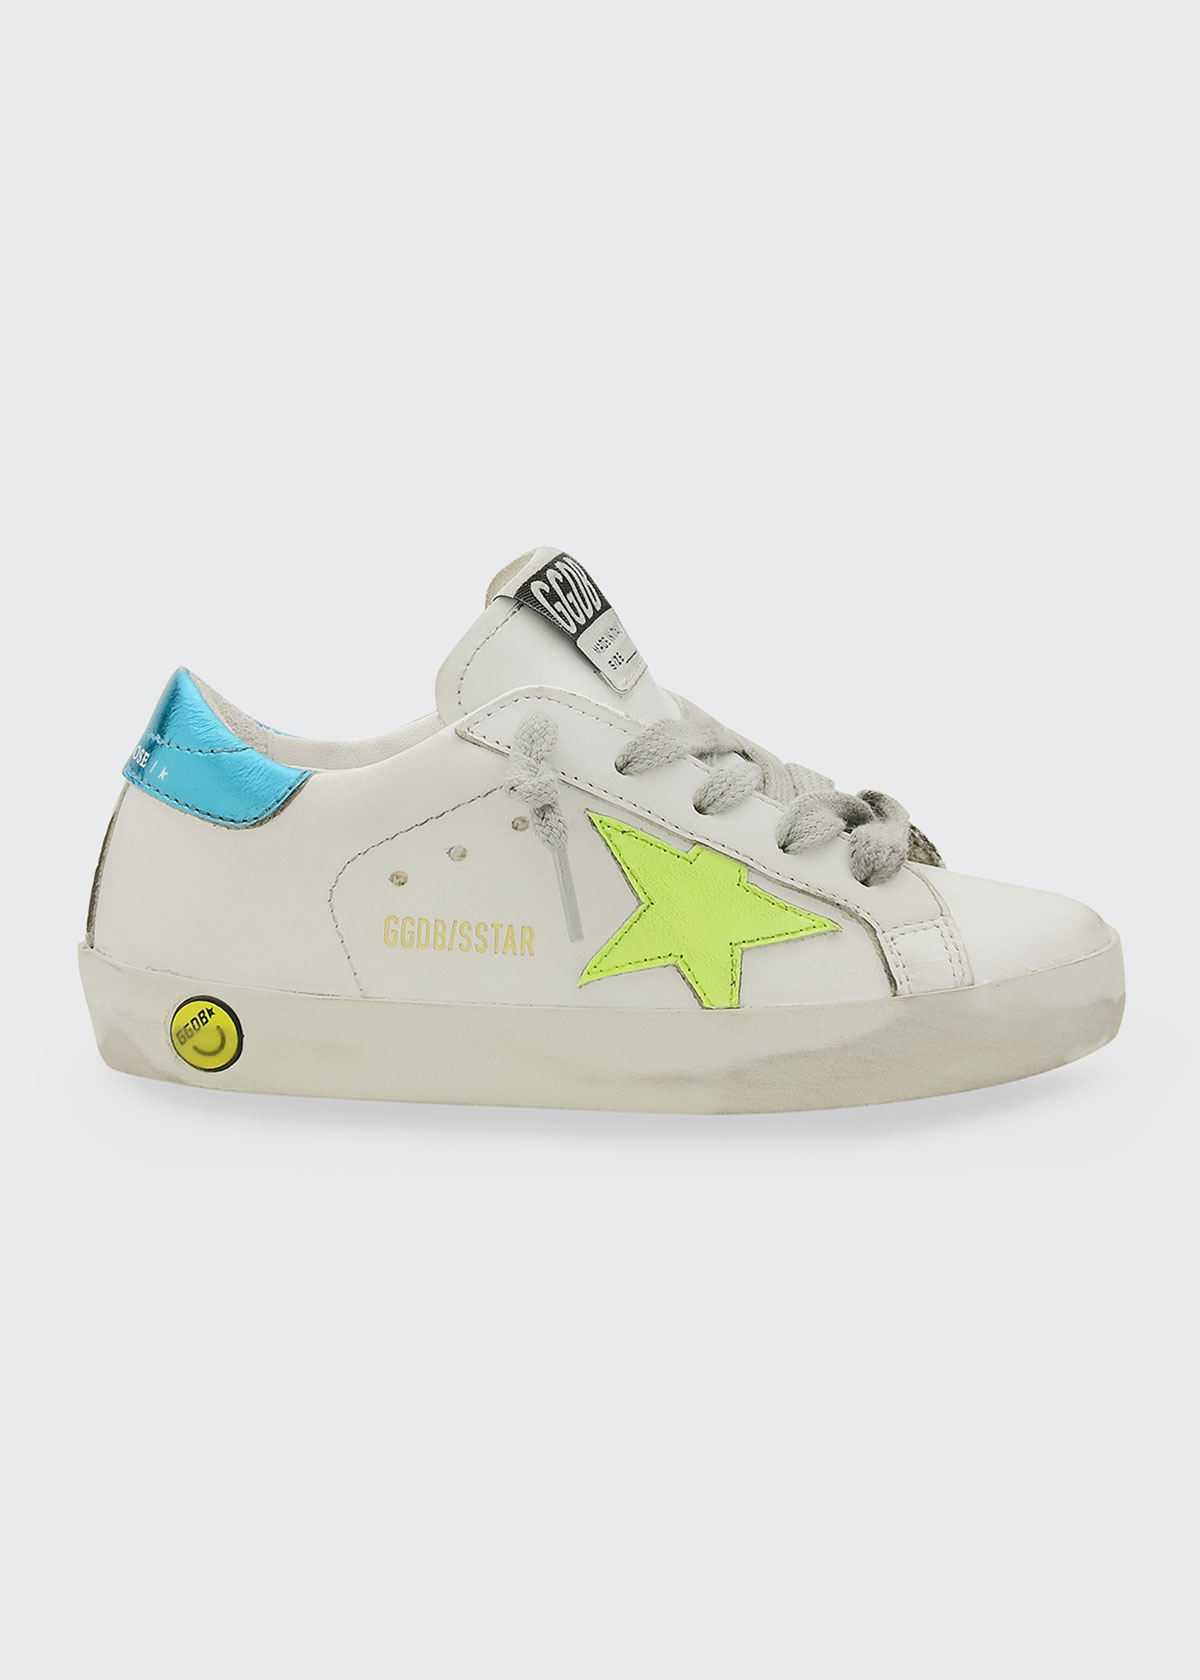 Golden Goose GIRL'S LEATHER LOW-TOP SNEAKERS, BABY/TODDLERS